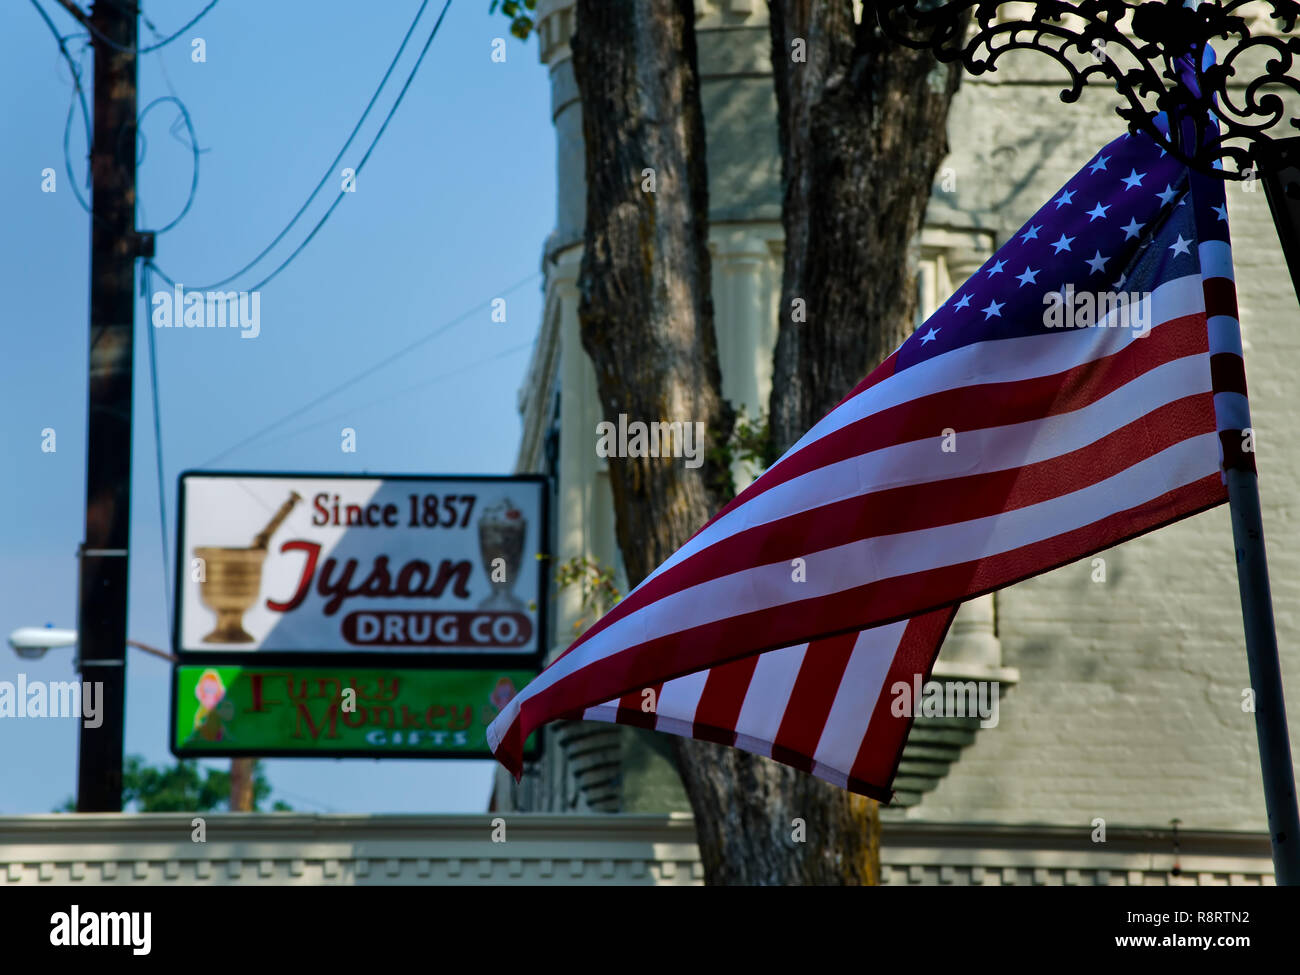 An American flag flies Sept. 25, 2011 in Holly Springs, Miss. In the background is Tyson Drug Co., which sells old-fashioned sodas and milkshakes. - Stock Image